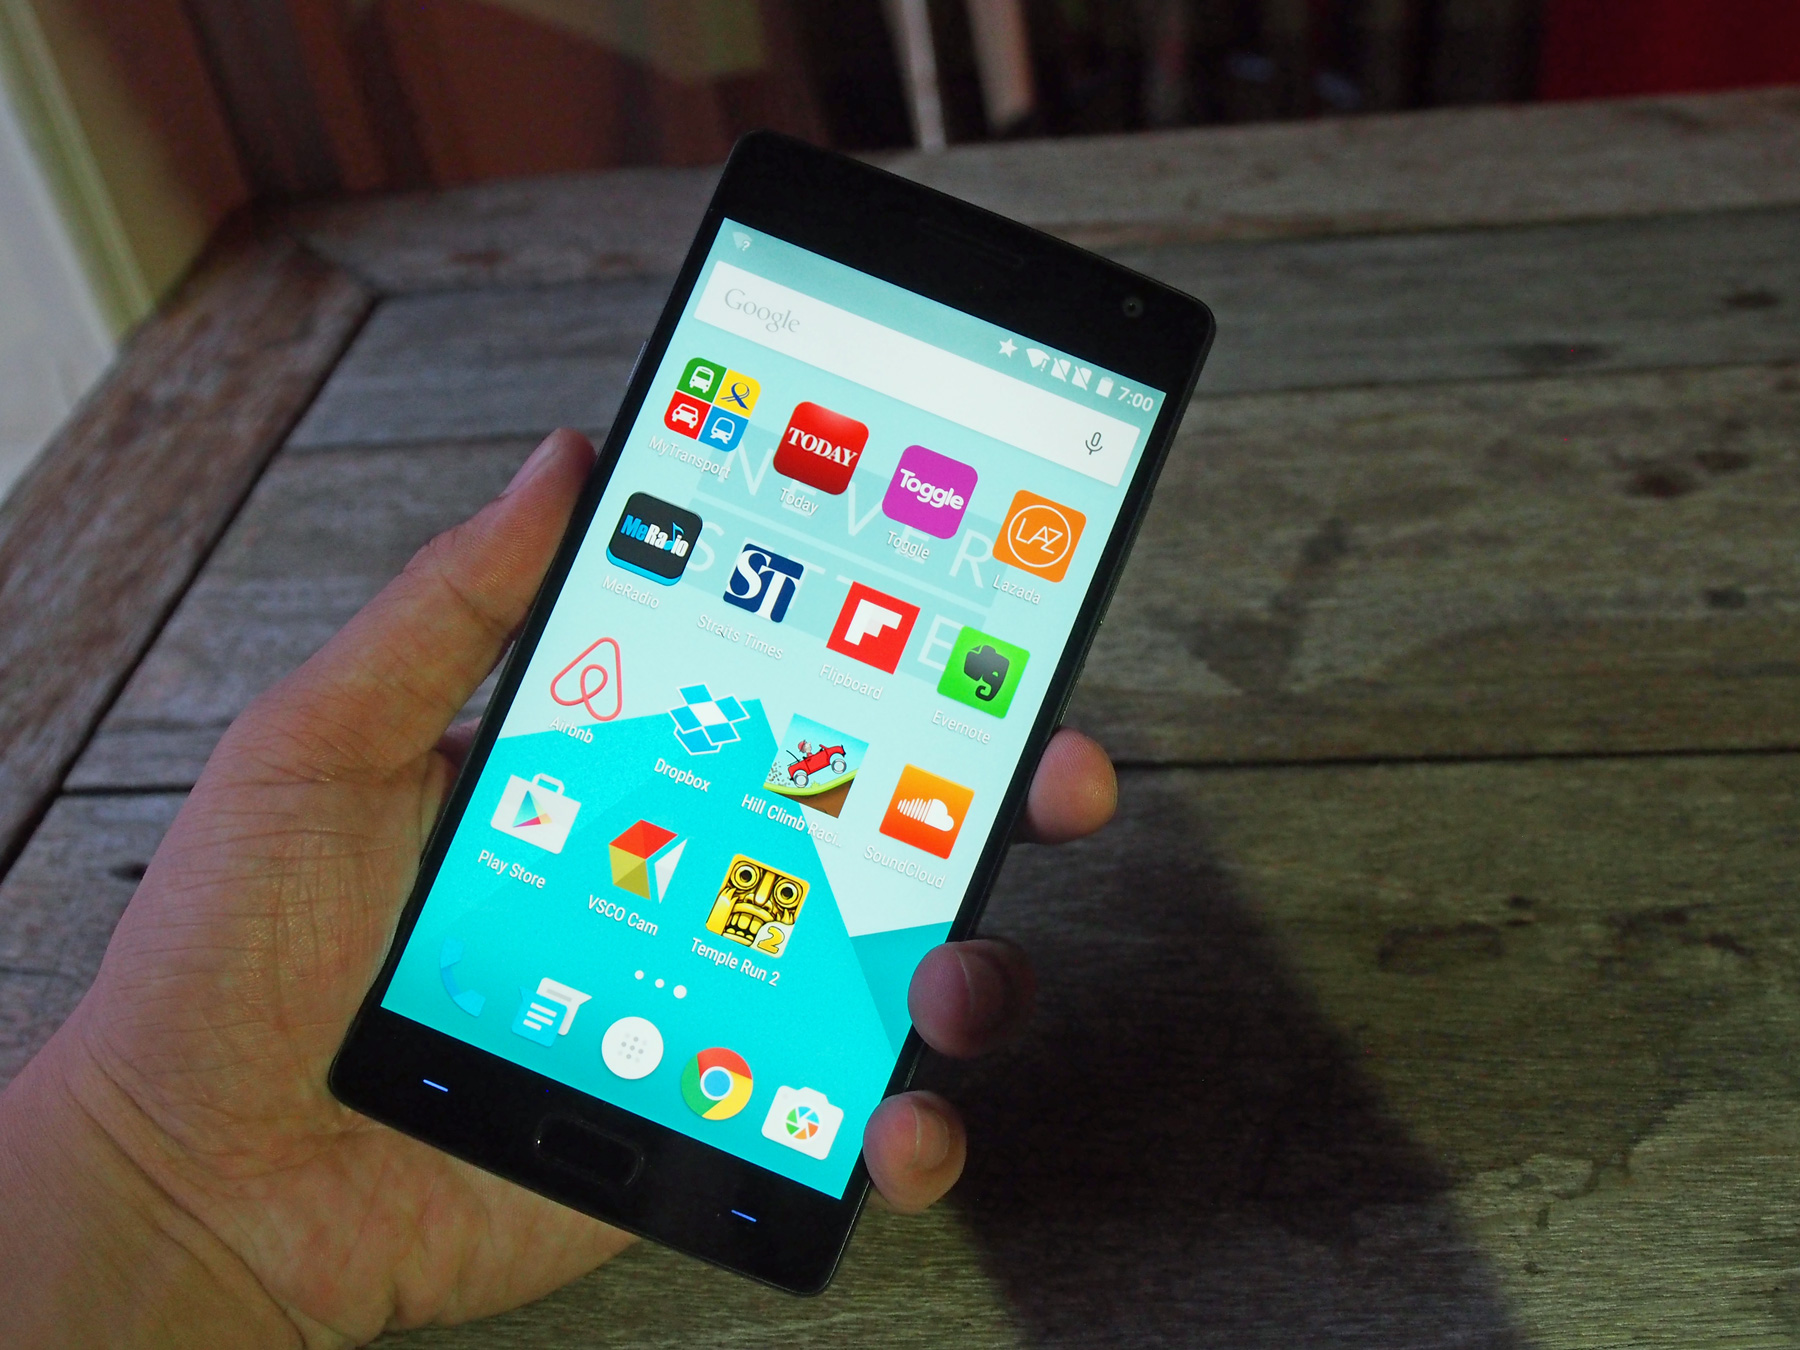 The OnePlus 2 has a nicely-lit 5.5-inch Full HD panel (1,920 x 1,080 pixels) at 401ppi.